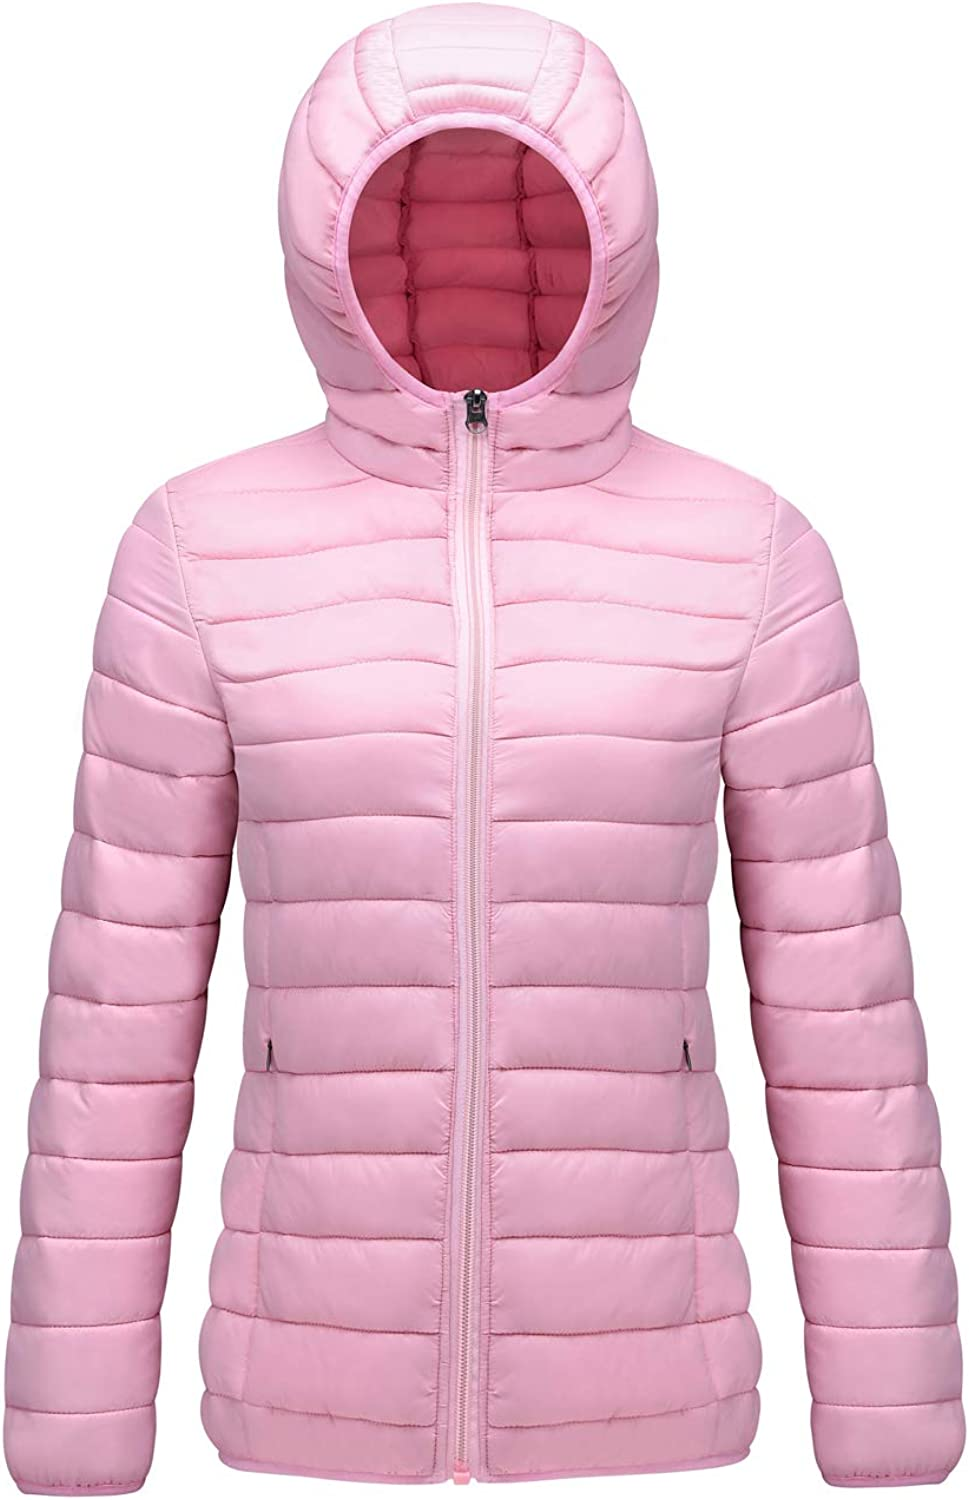 SUNDAY pink Women's Packable Jacket Lightweight Hooded Puffer Outerwear Coat